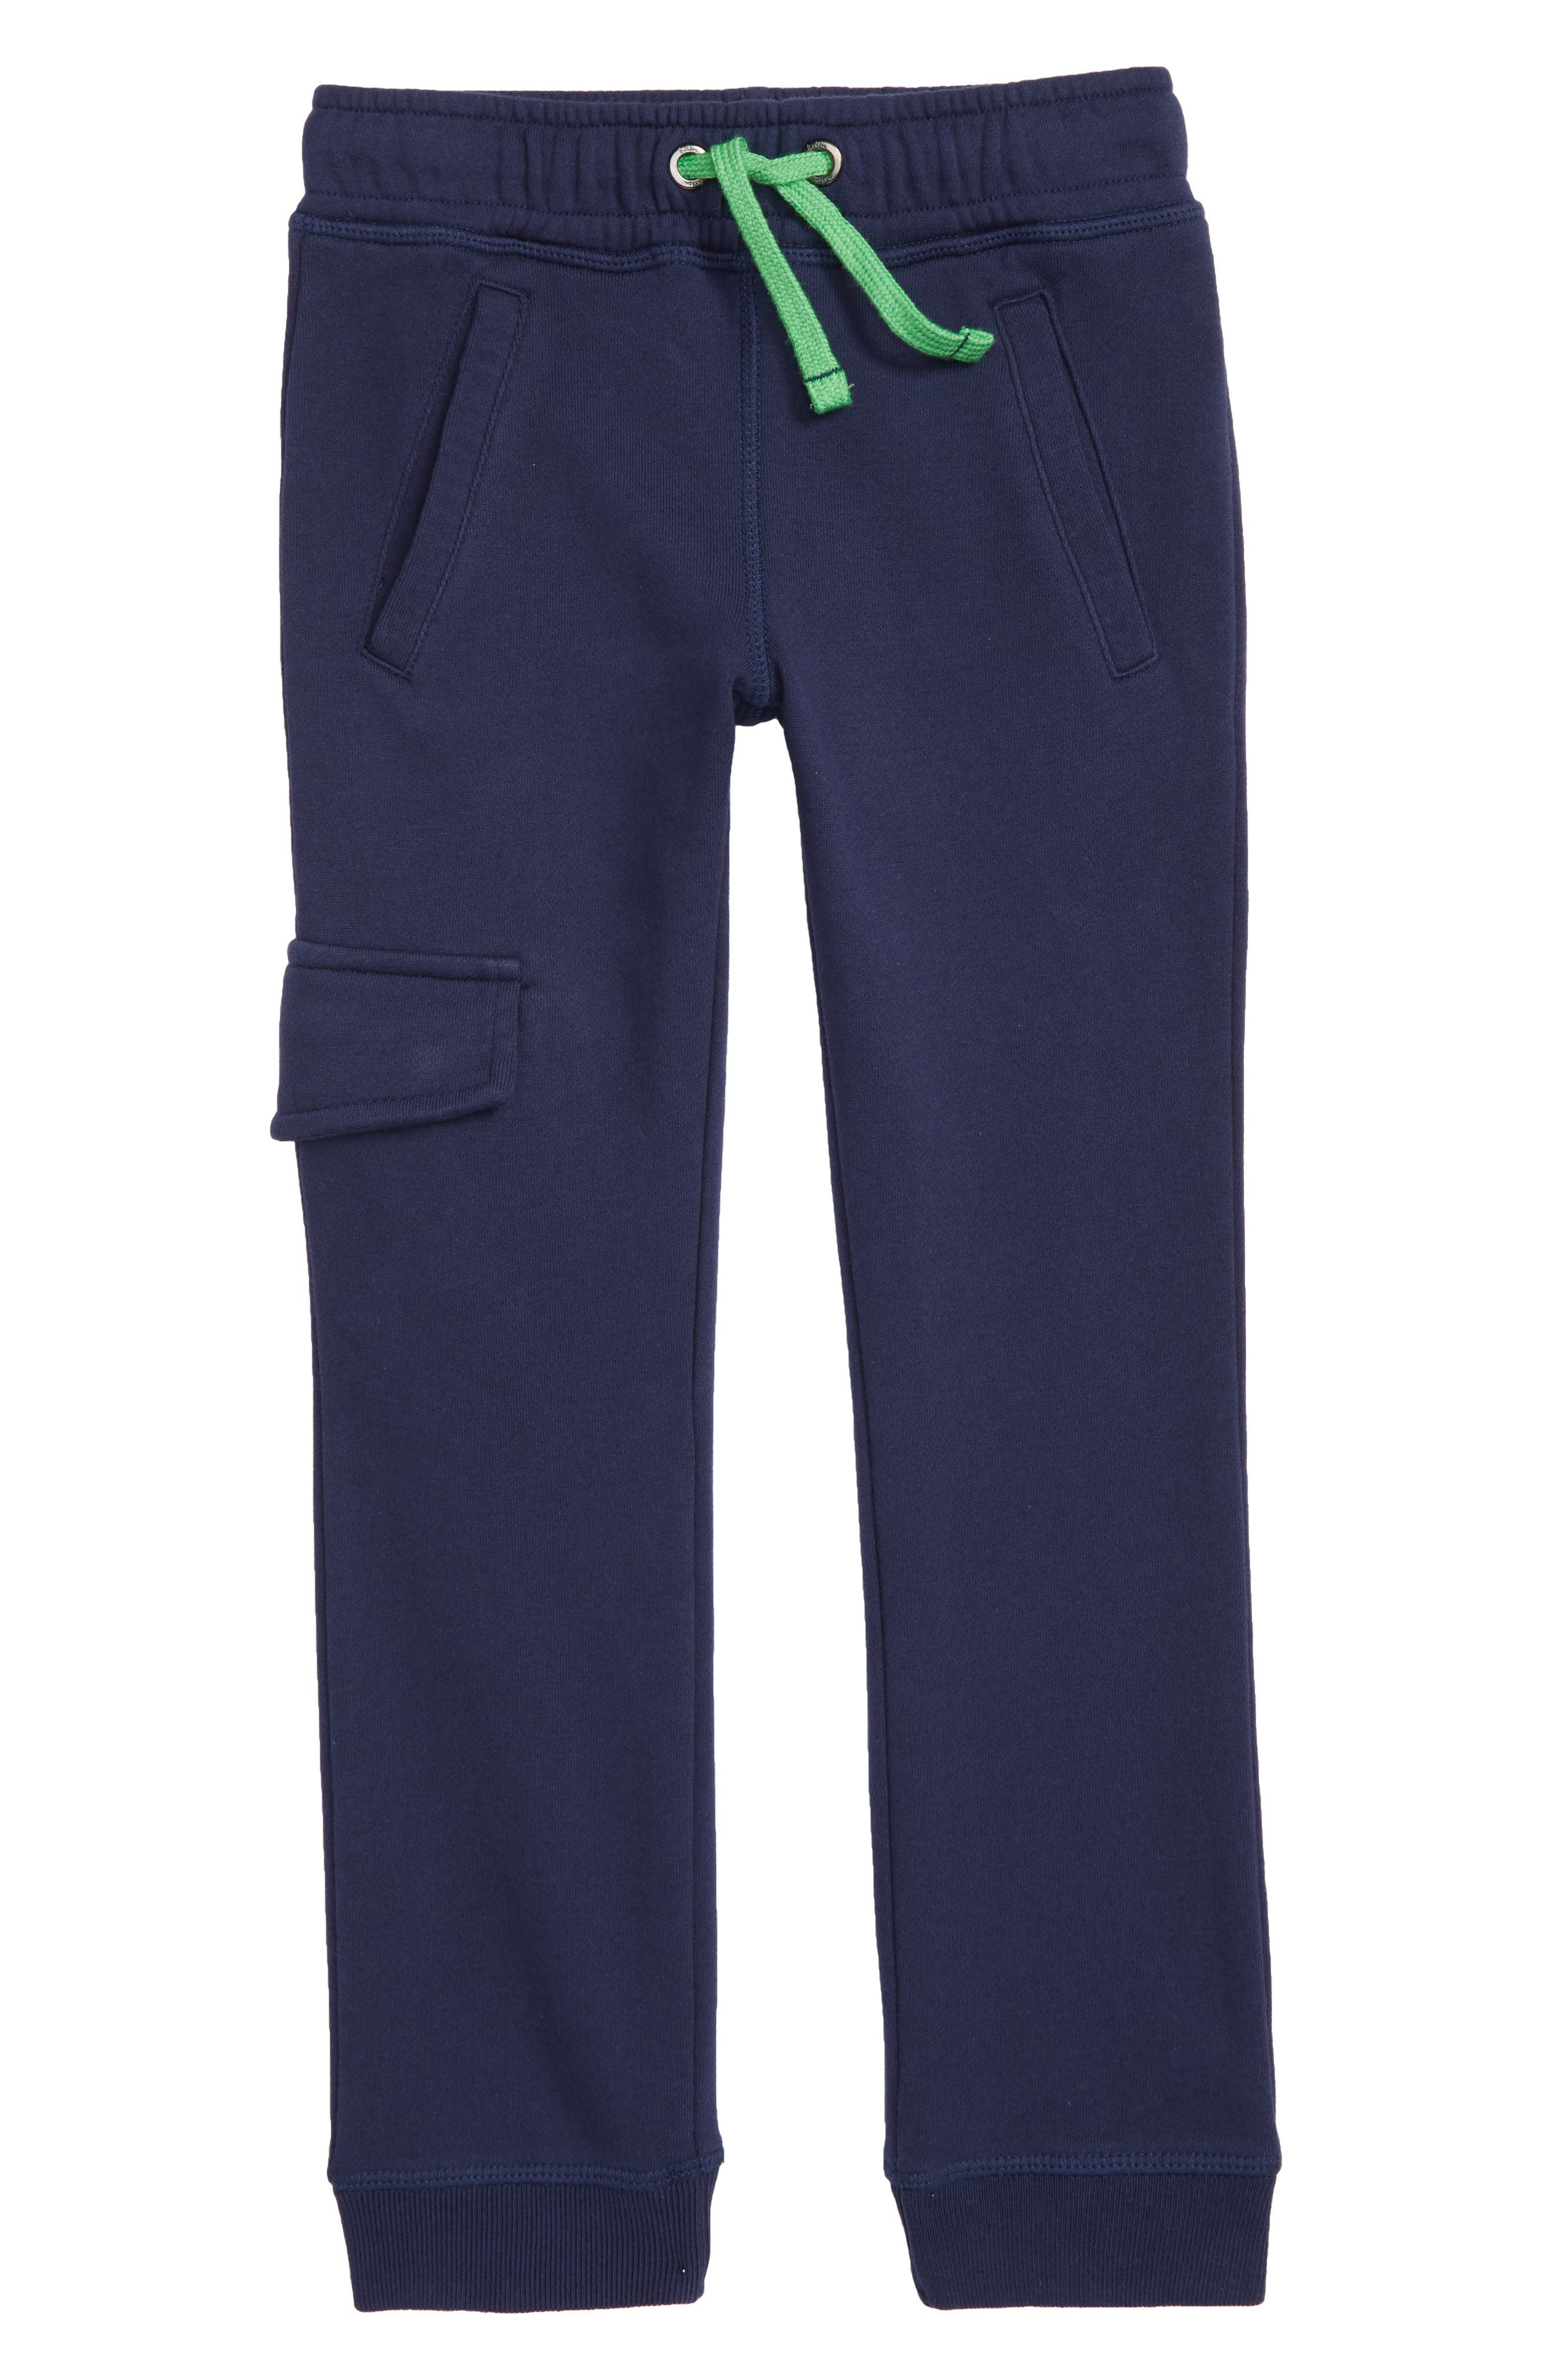 Jersey Jogger Pants,                         Main,                         color, 414